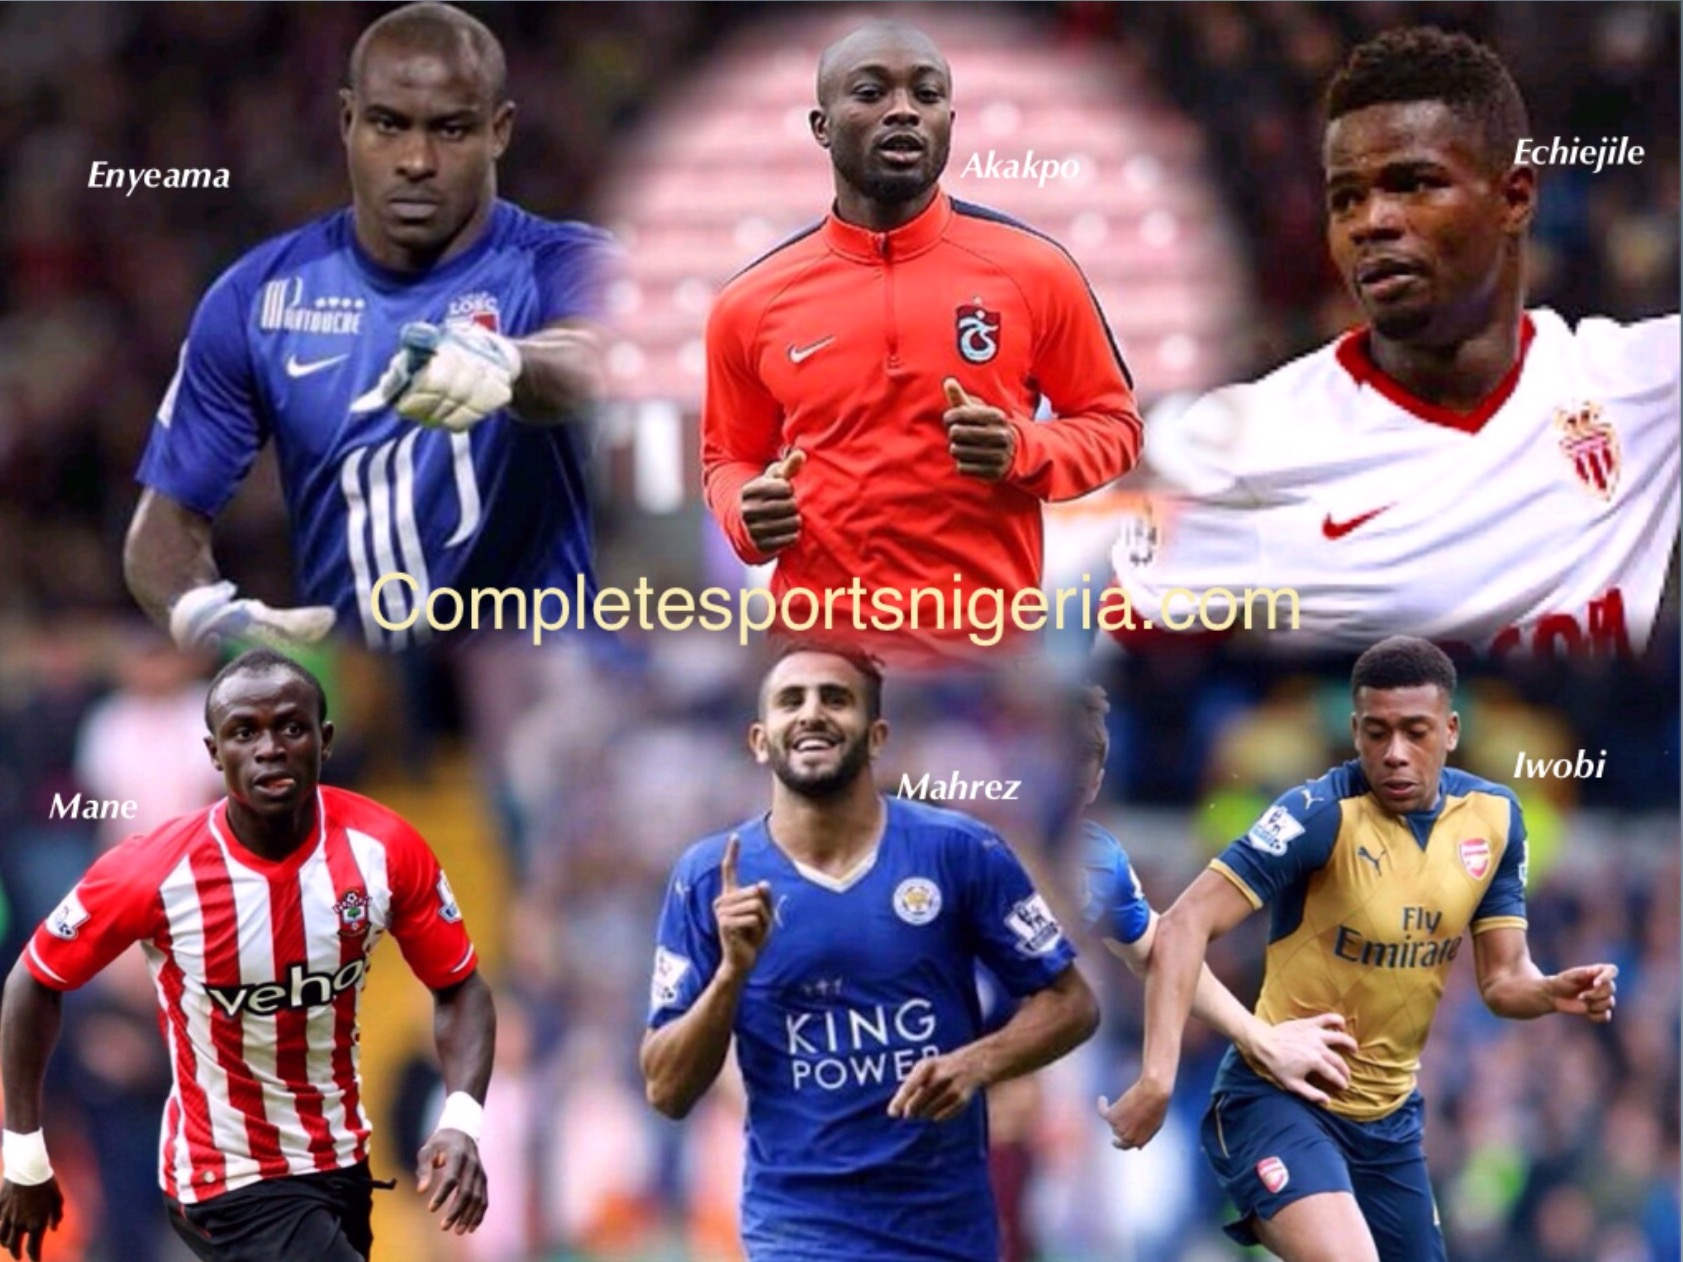 Enyeama, Mane, Echiejile, Mahrez, Iwobi  Make African Team Of The Week